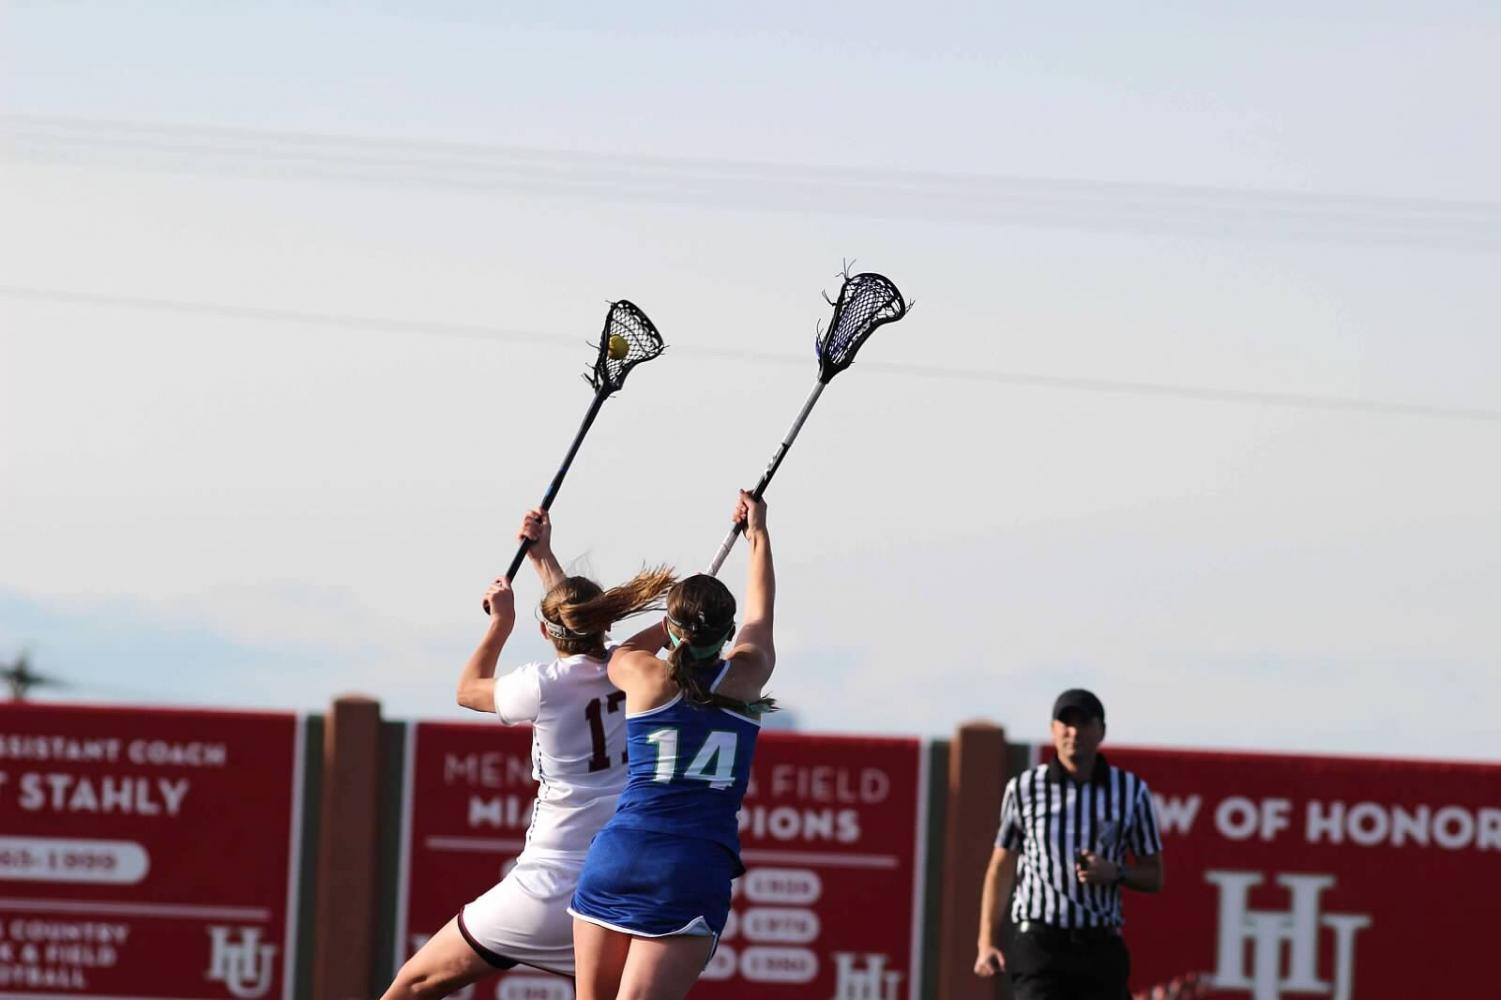 Junior Brayden Maass gets the ball during the Midwest Women's Lacrosse Championship game against Aurora on May 4, 2019.